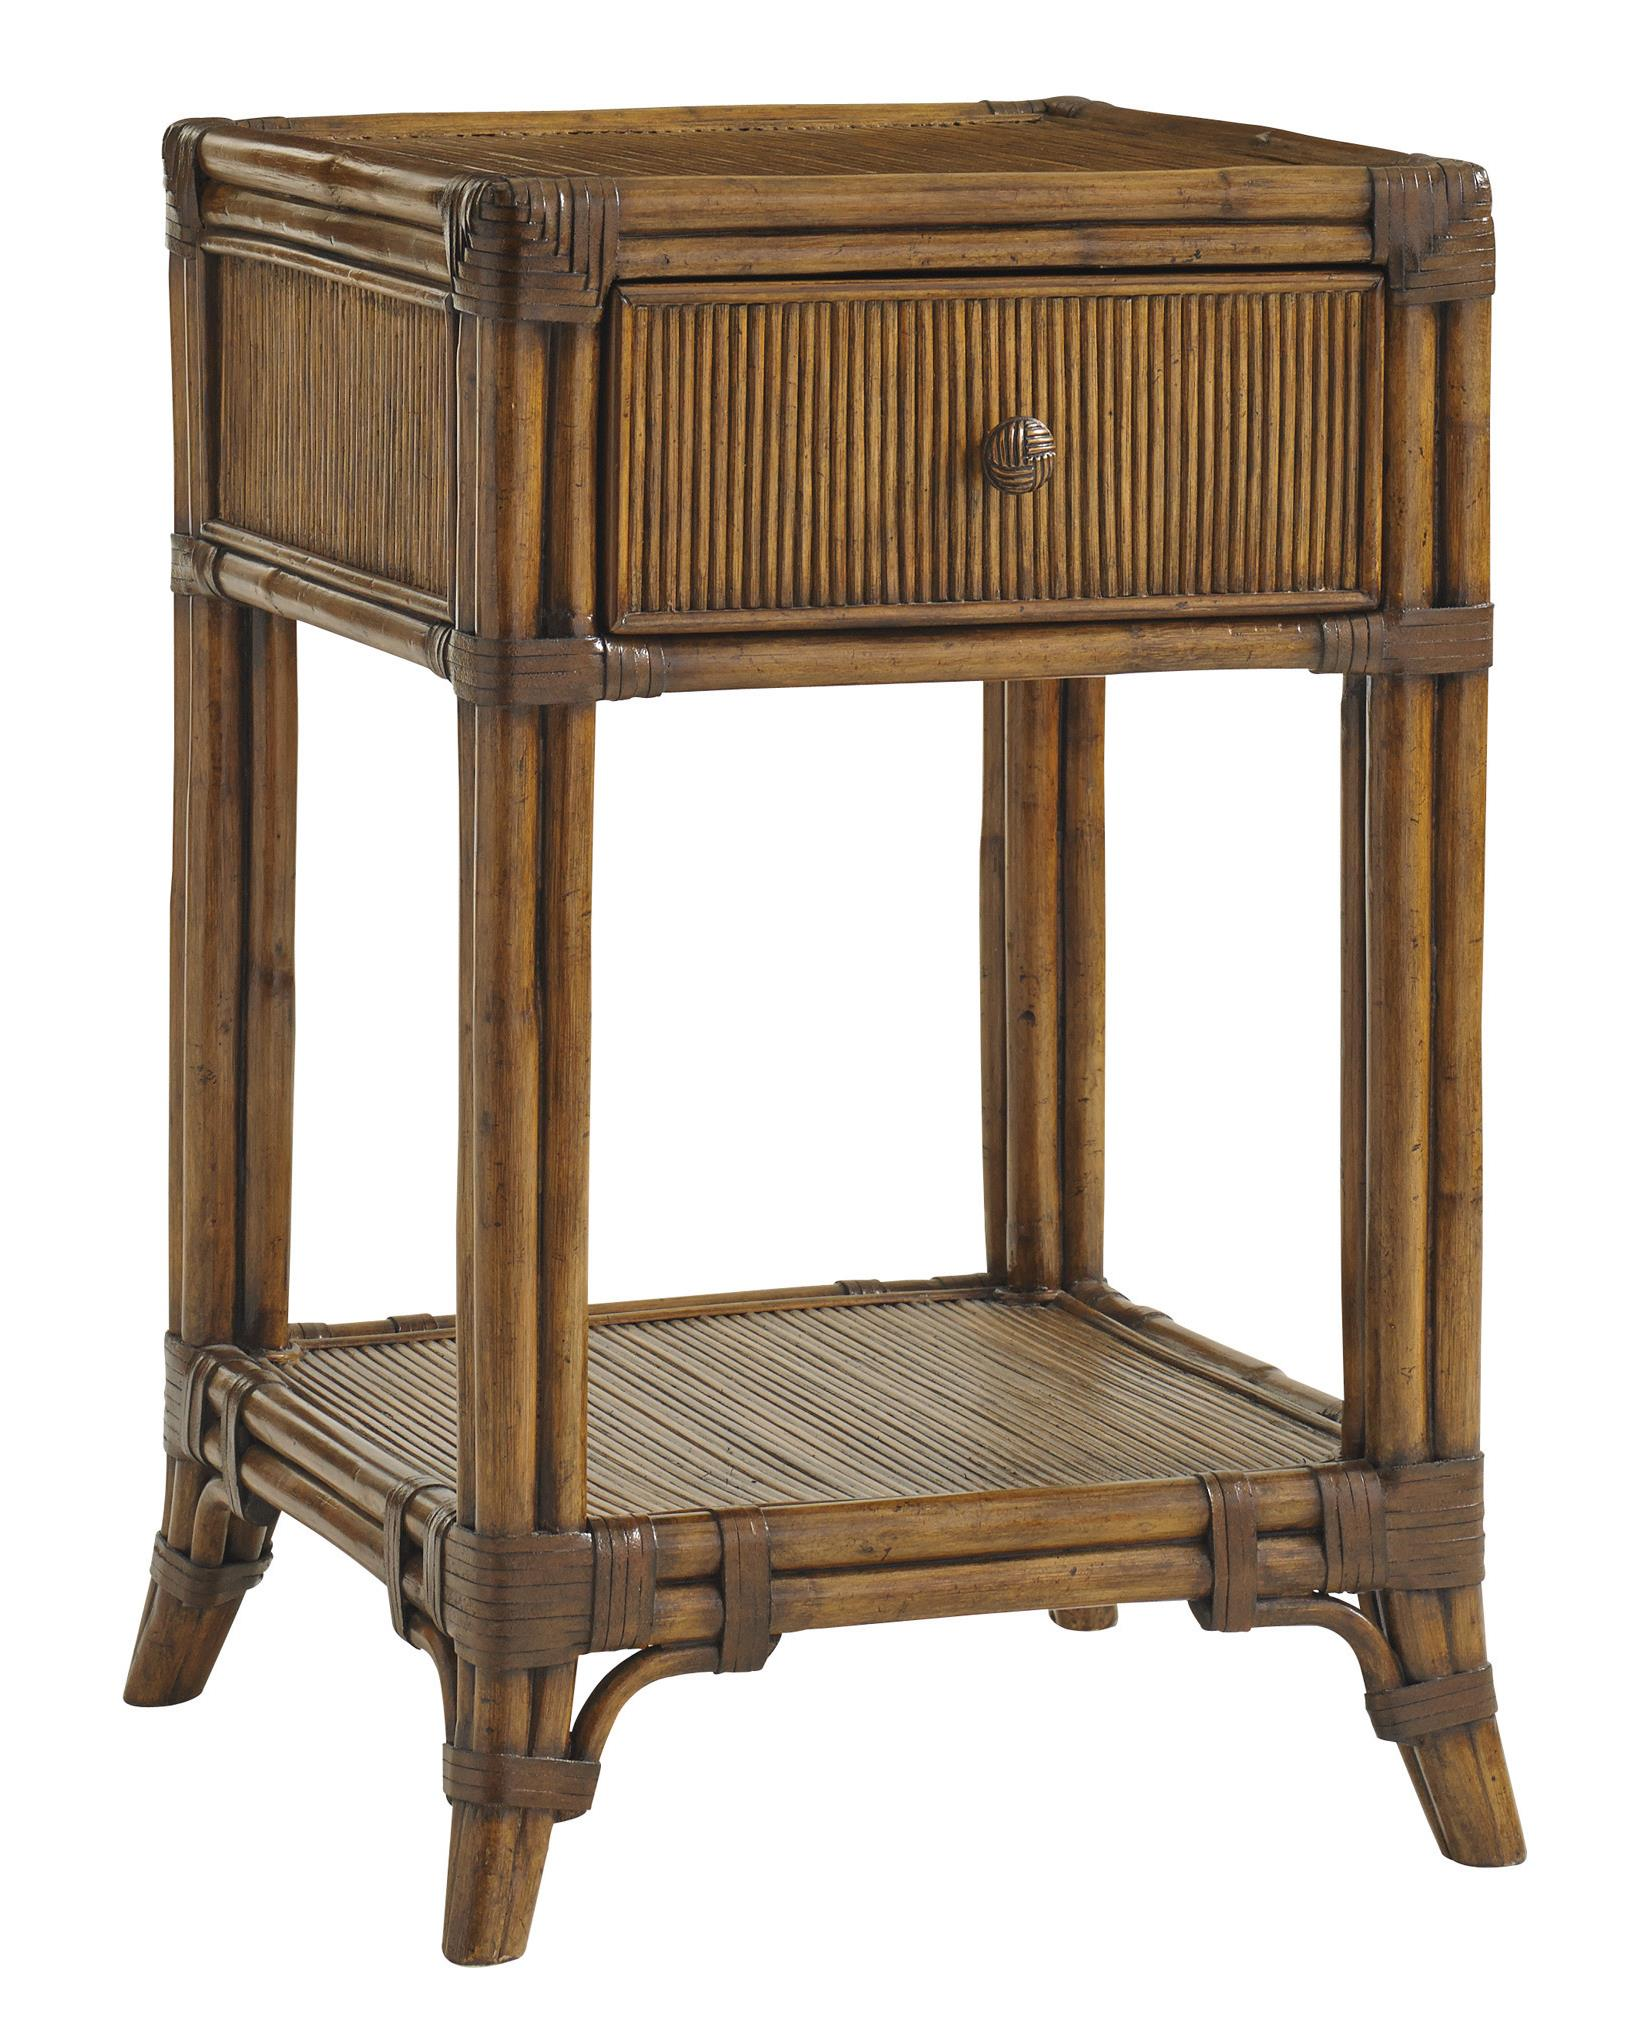 Bali Hai Del Sol Bedside Table by Tommy Bahama Home at Story & Lee Furniture